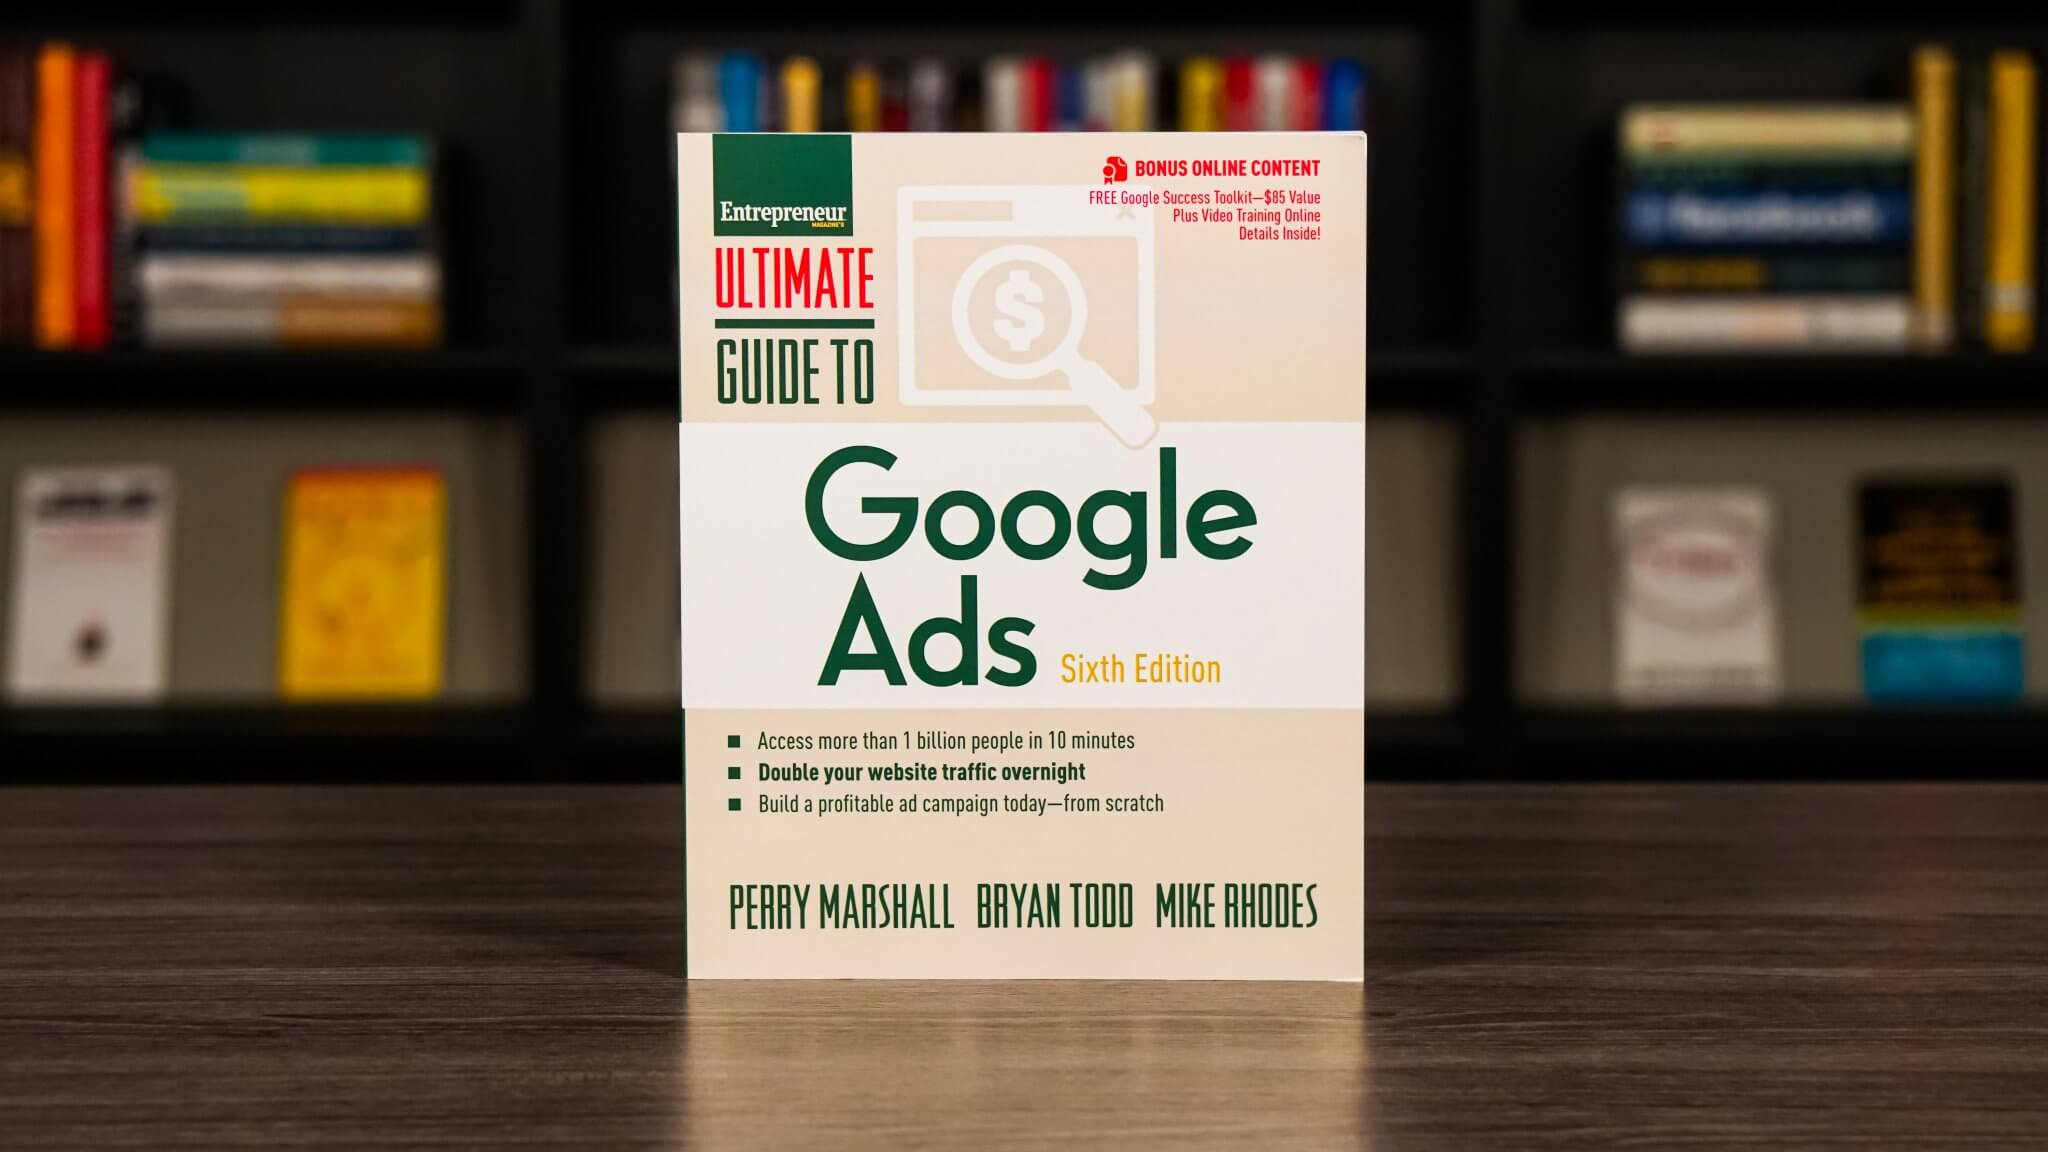 The Ultimate Guide To Google Ads Book Cover